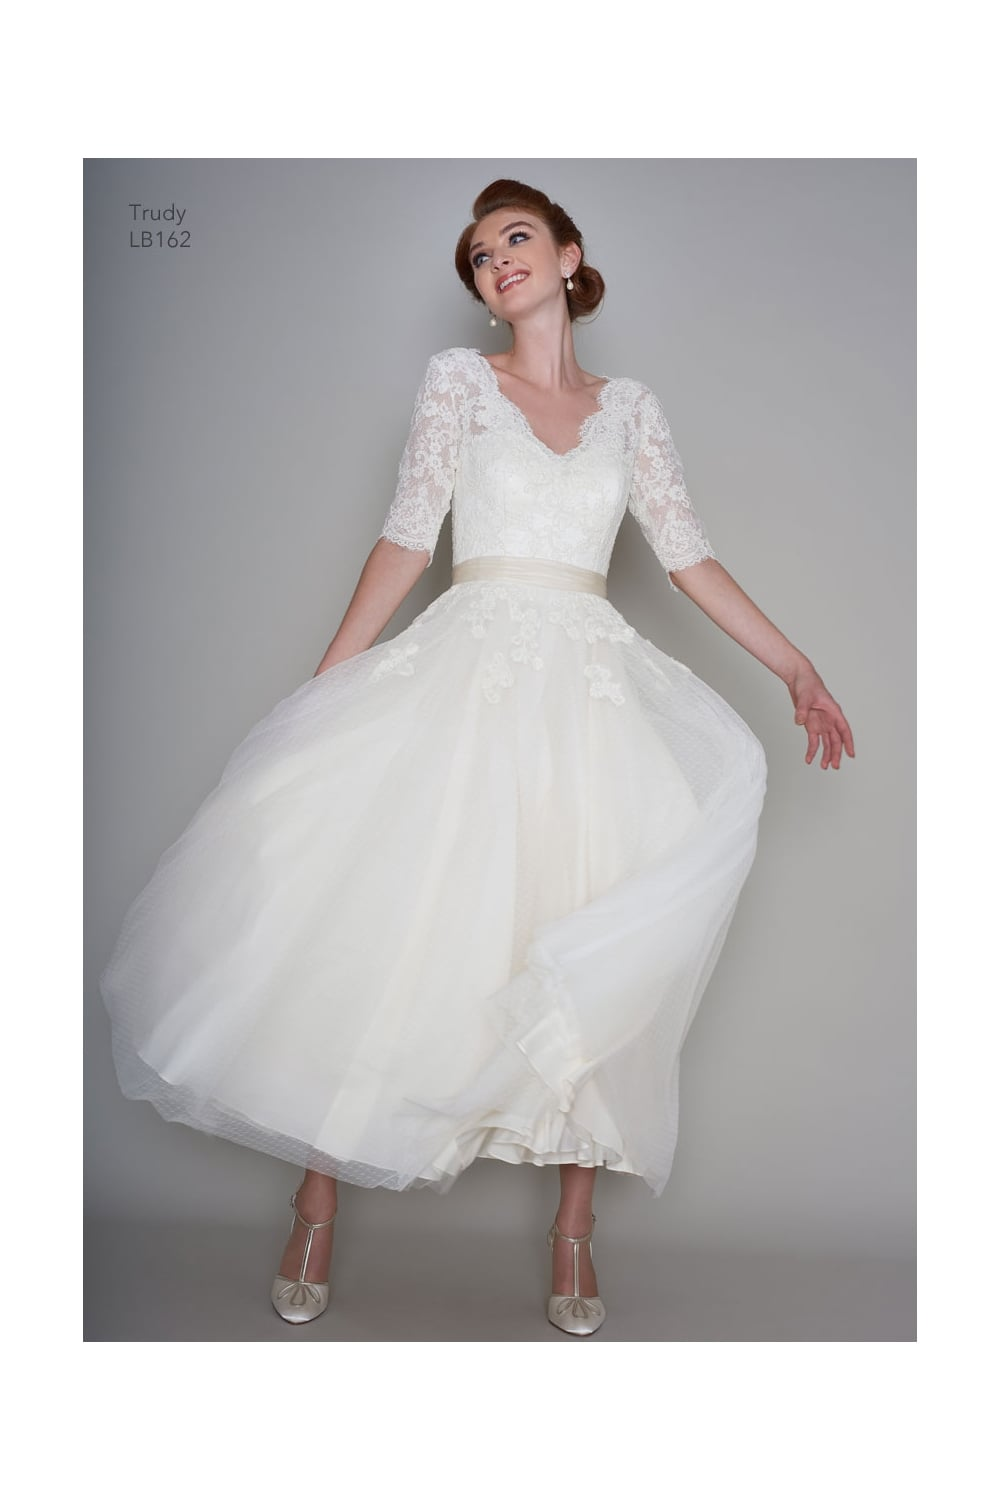 Wedding Dress With Sleeves.Loulou Bridal Trudy Vintage Calf Ankle Length Wedding Gown With Sleeves